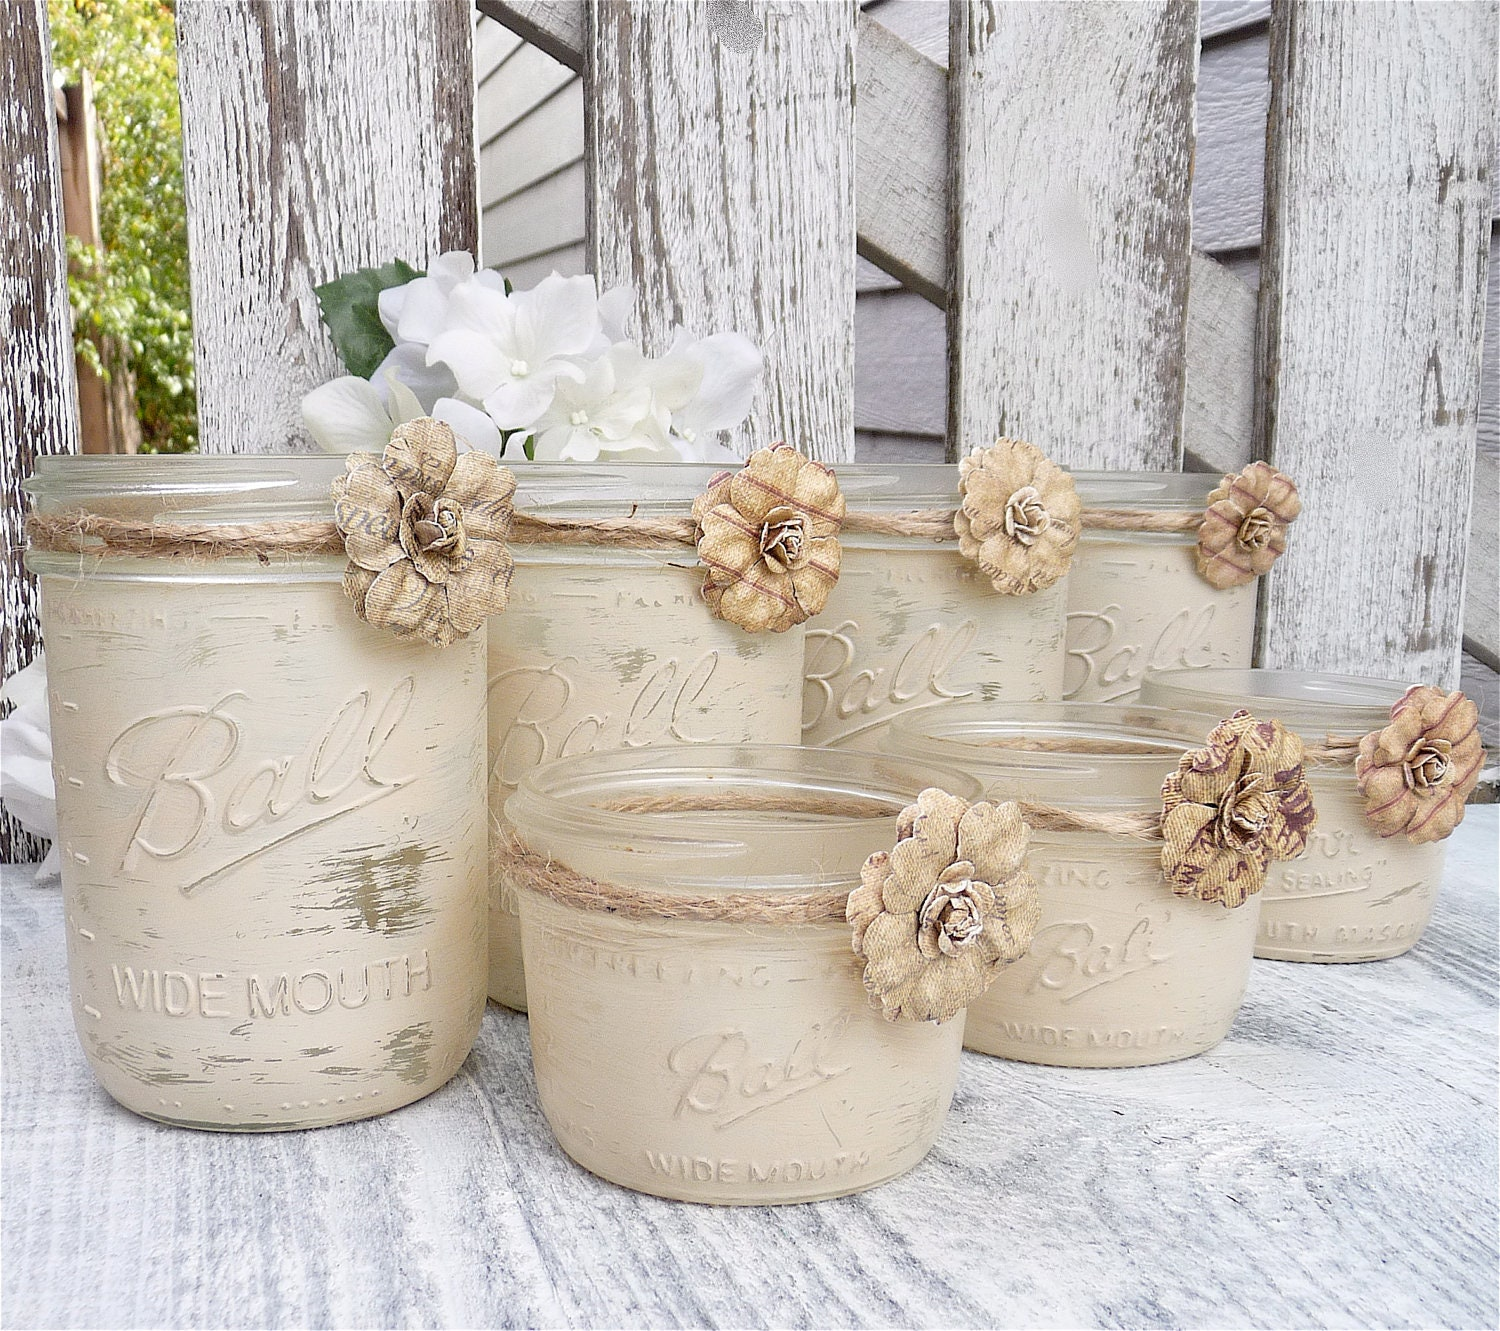 Country Wedding Centerpieces Ideas: RUSTIC WEDDING Shabby Chic Upcycled Country By HuckleberryVntg